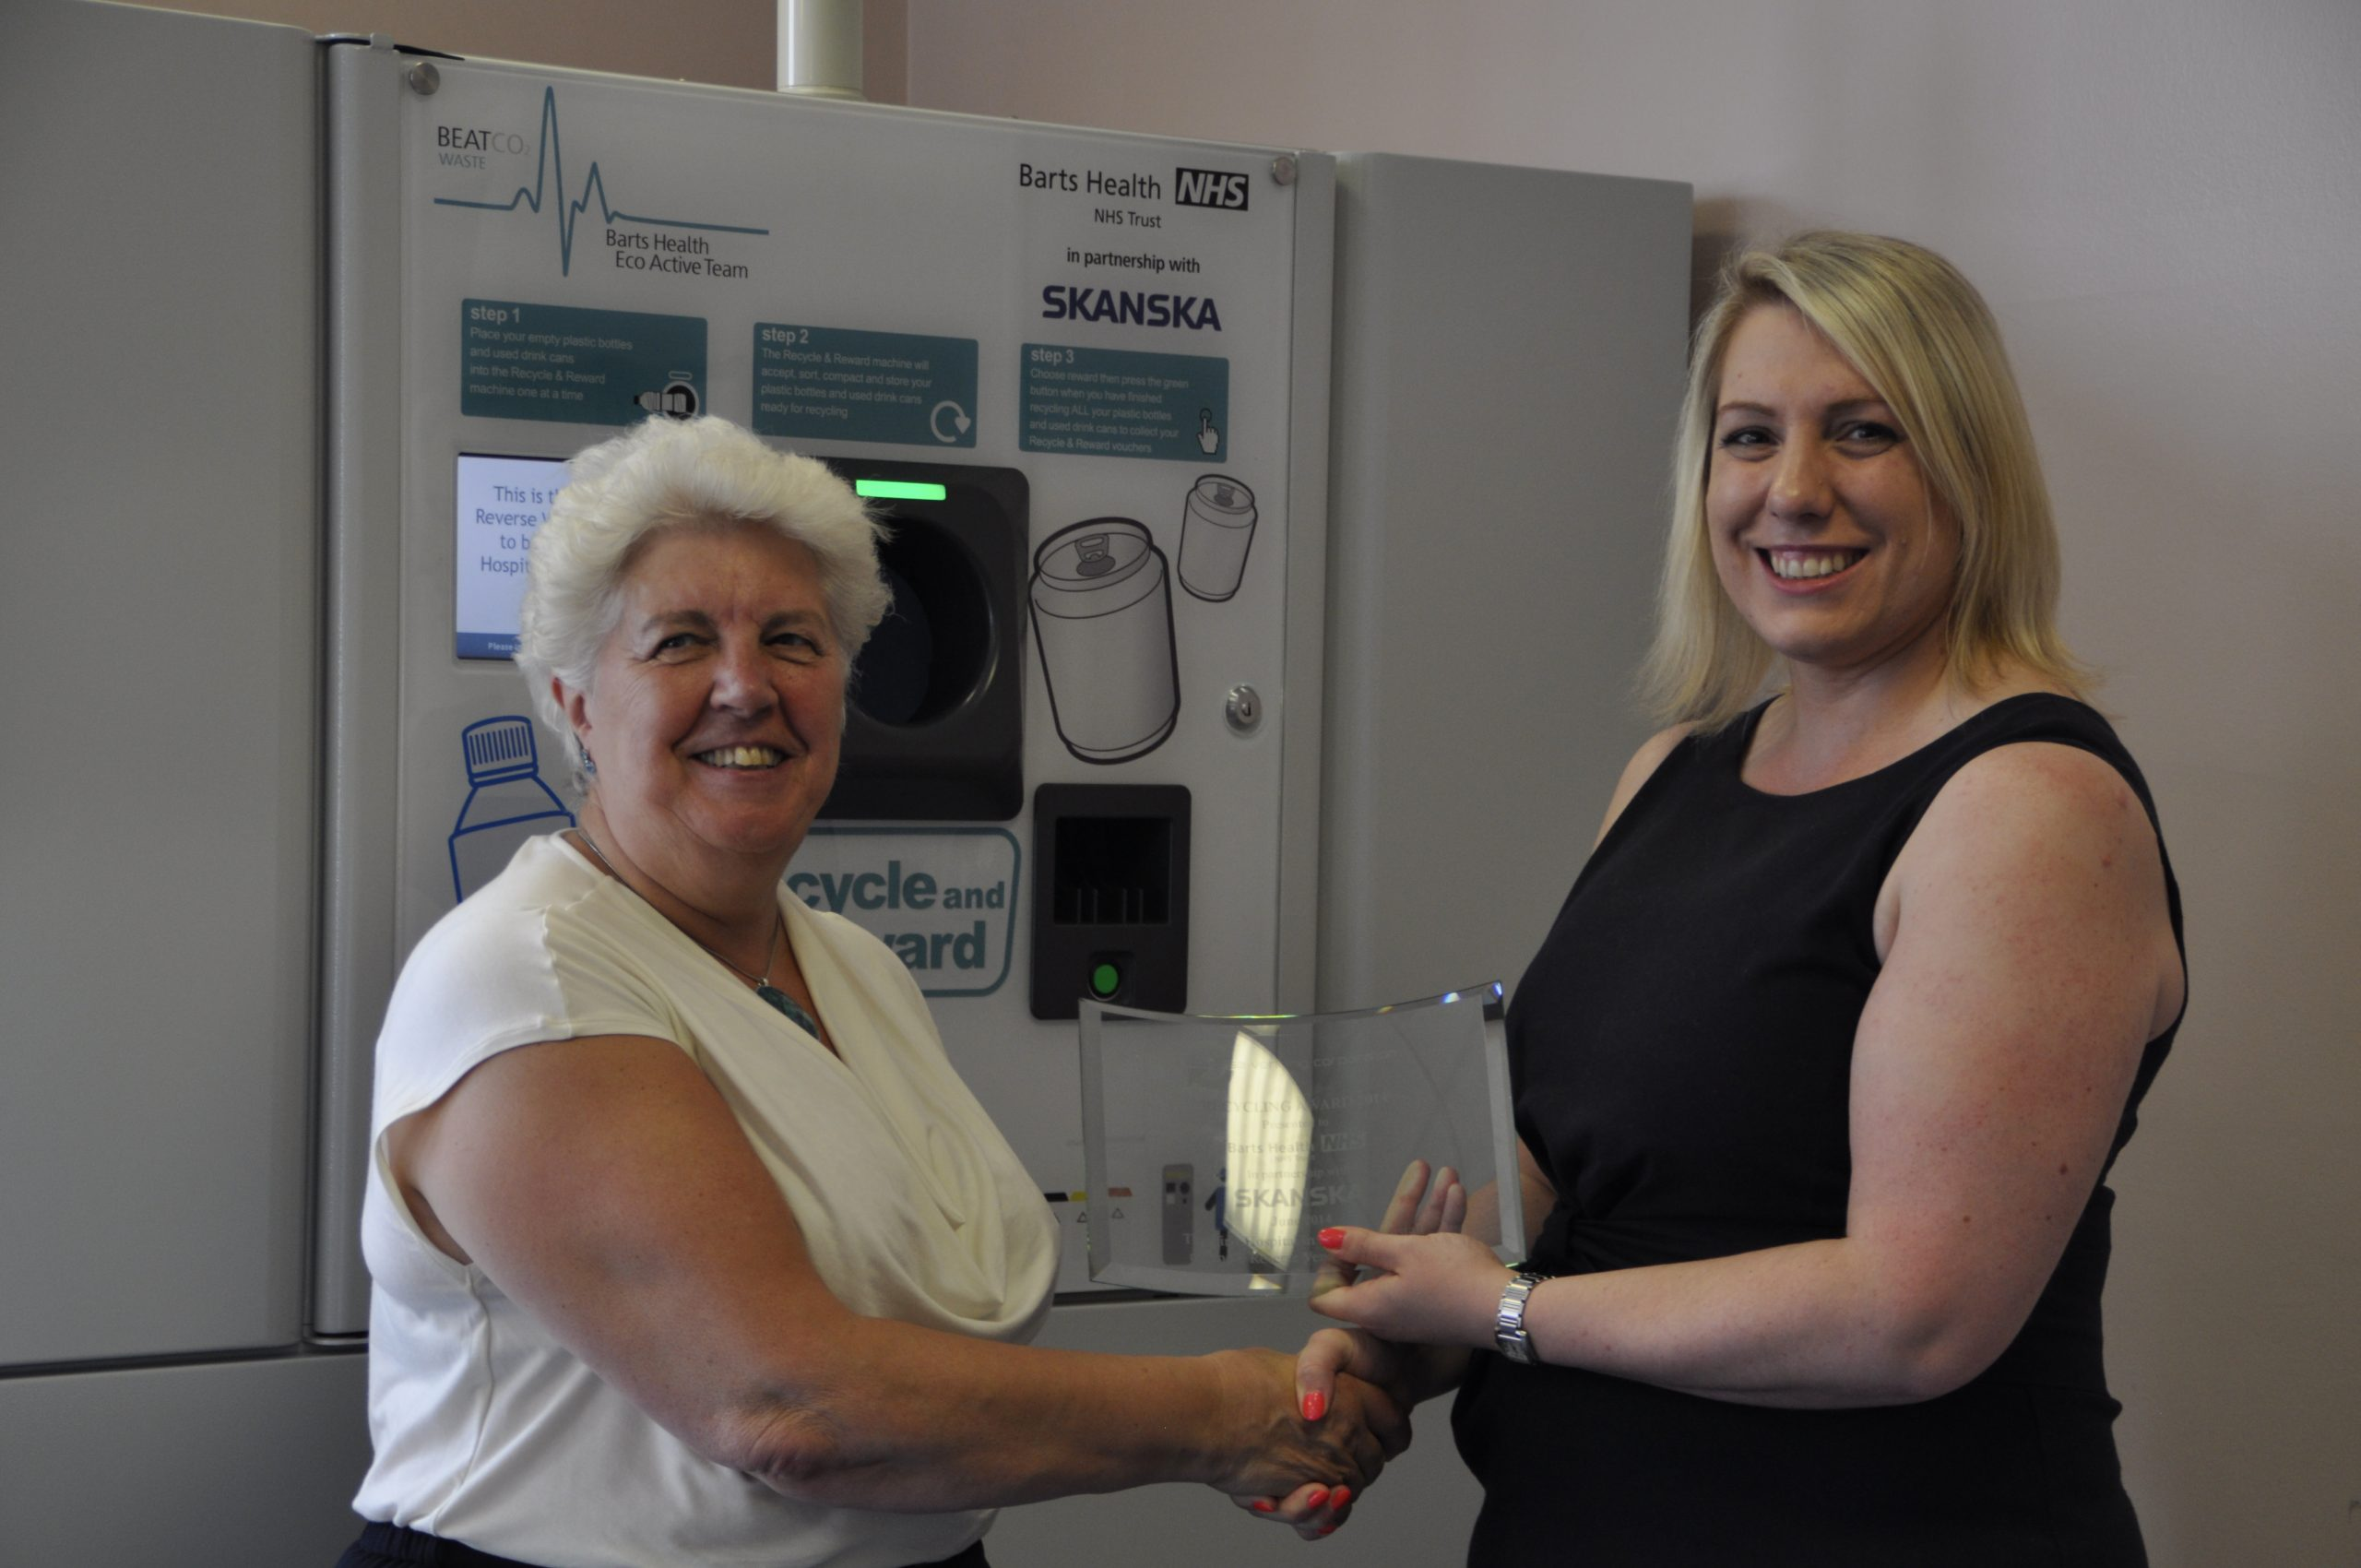 Fiona Daly receiving the Award for the First NHS Trust to install three Reverse Vending Machines